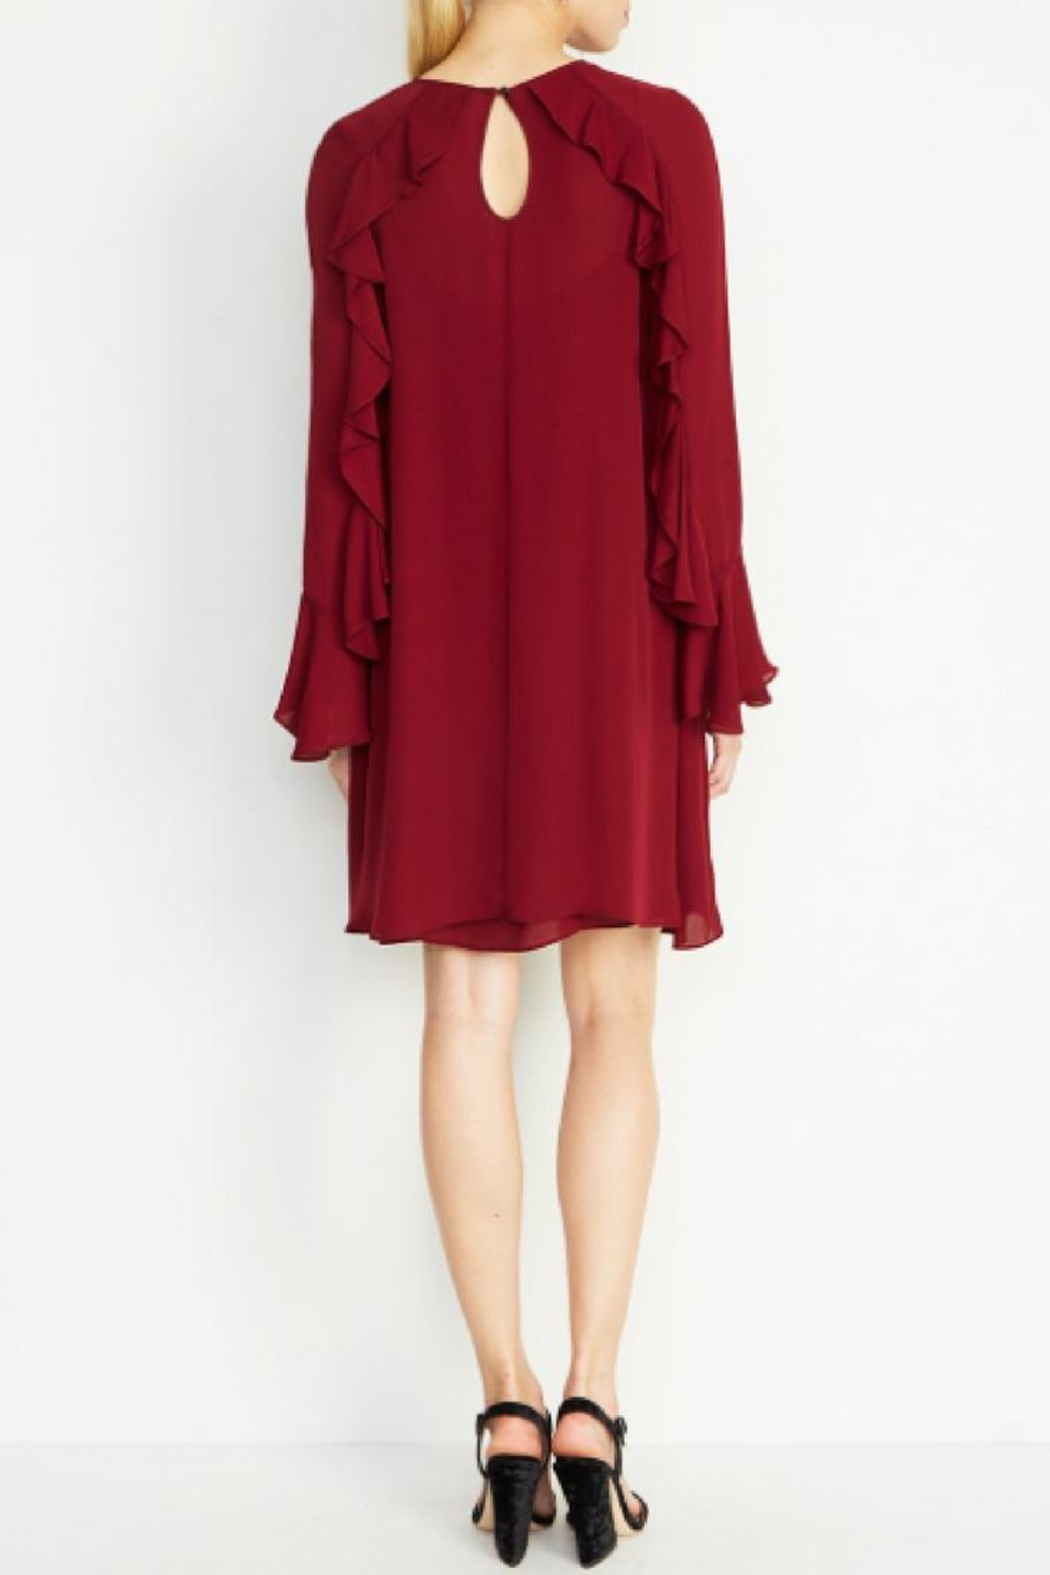 Nicole Miller Lera Bell-Sleeve Dress - Front Full Image